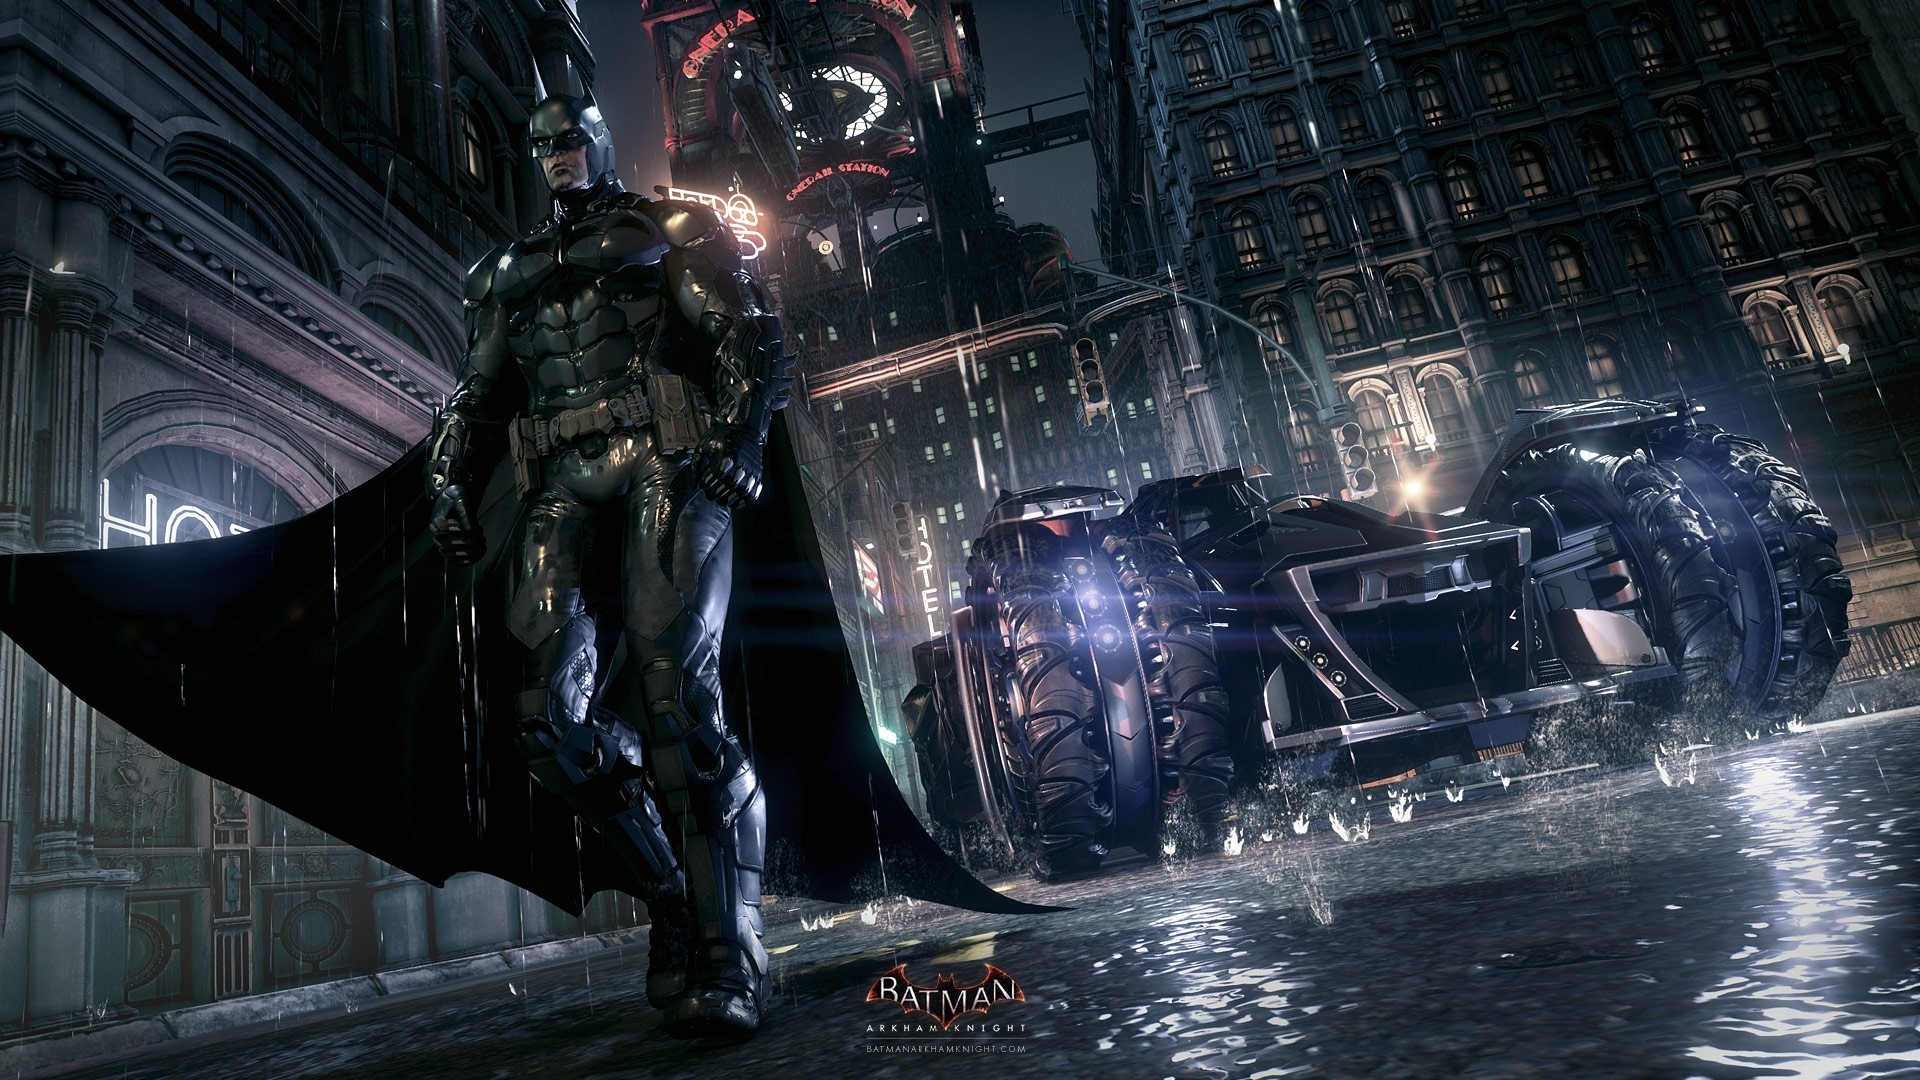 1920x1080 Batman Arkham Knight Jeux Video Fond Ecran Wallpaper